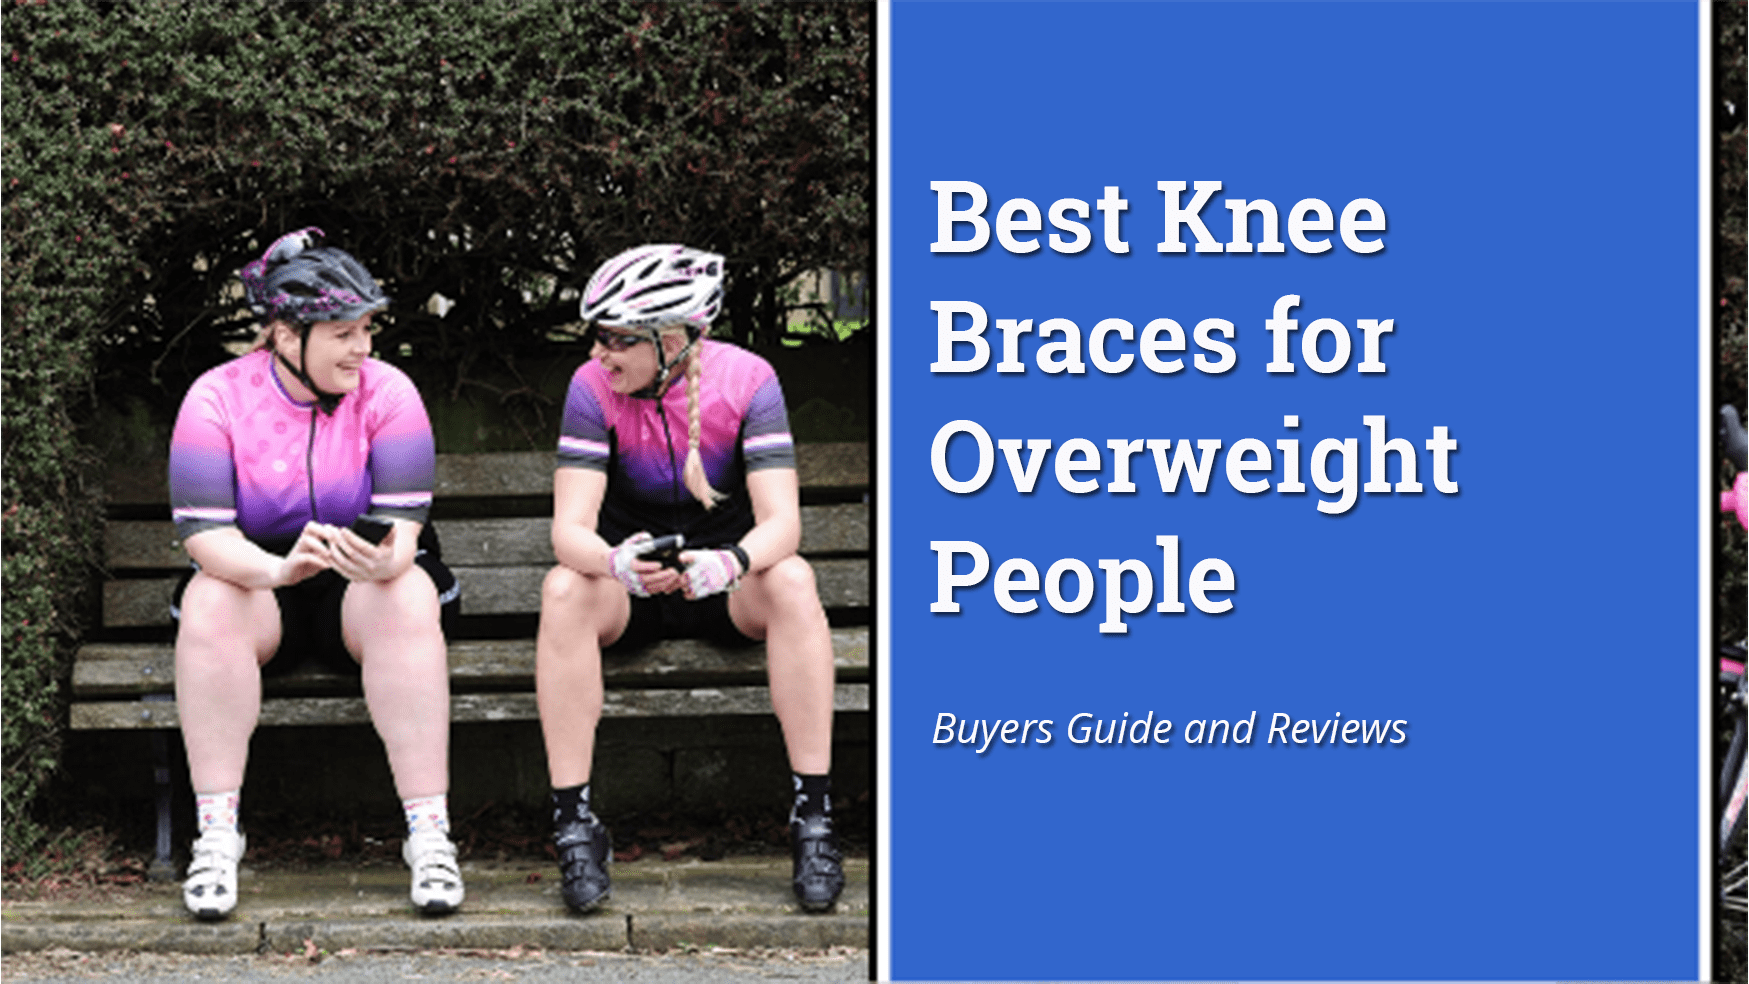 When it comes to buying the best knee brace for overweight, it's essential that you take time to do your research